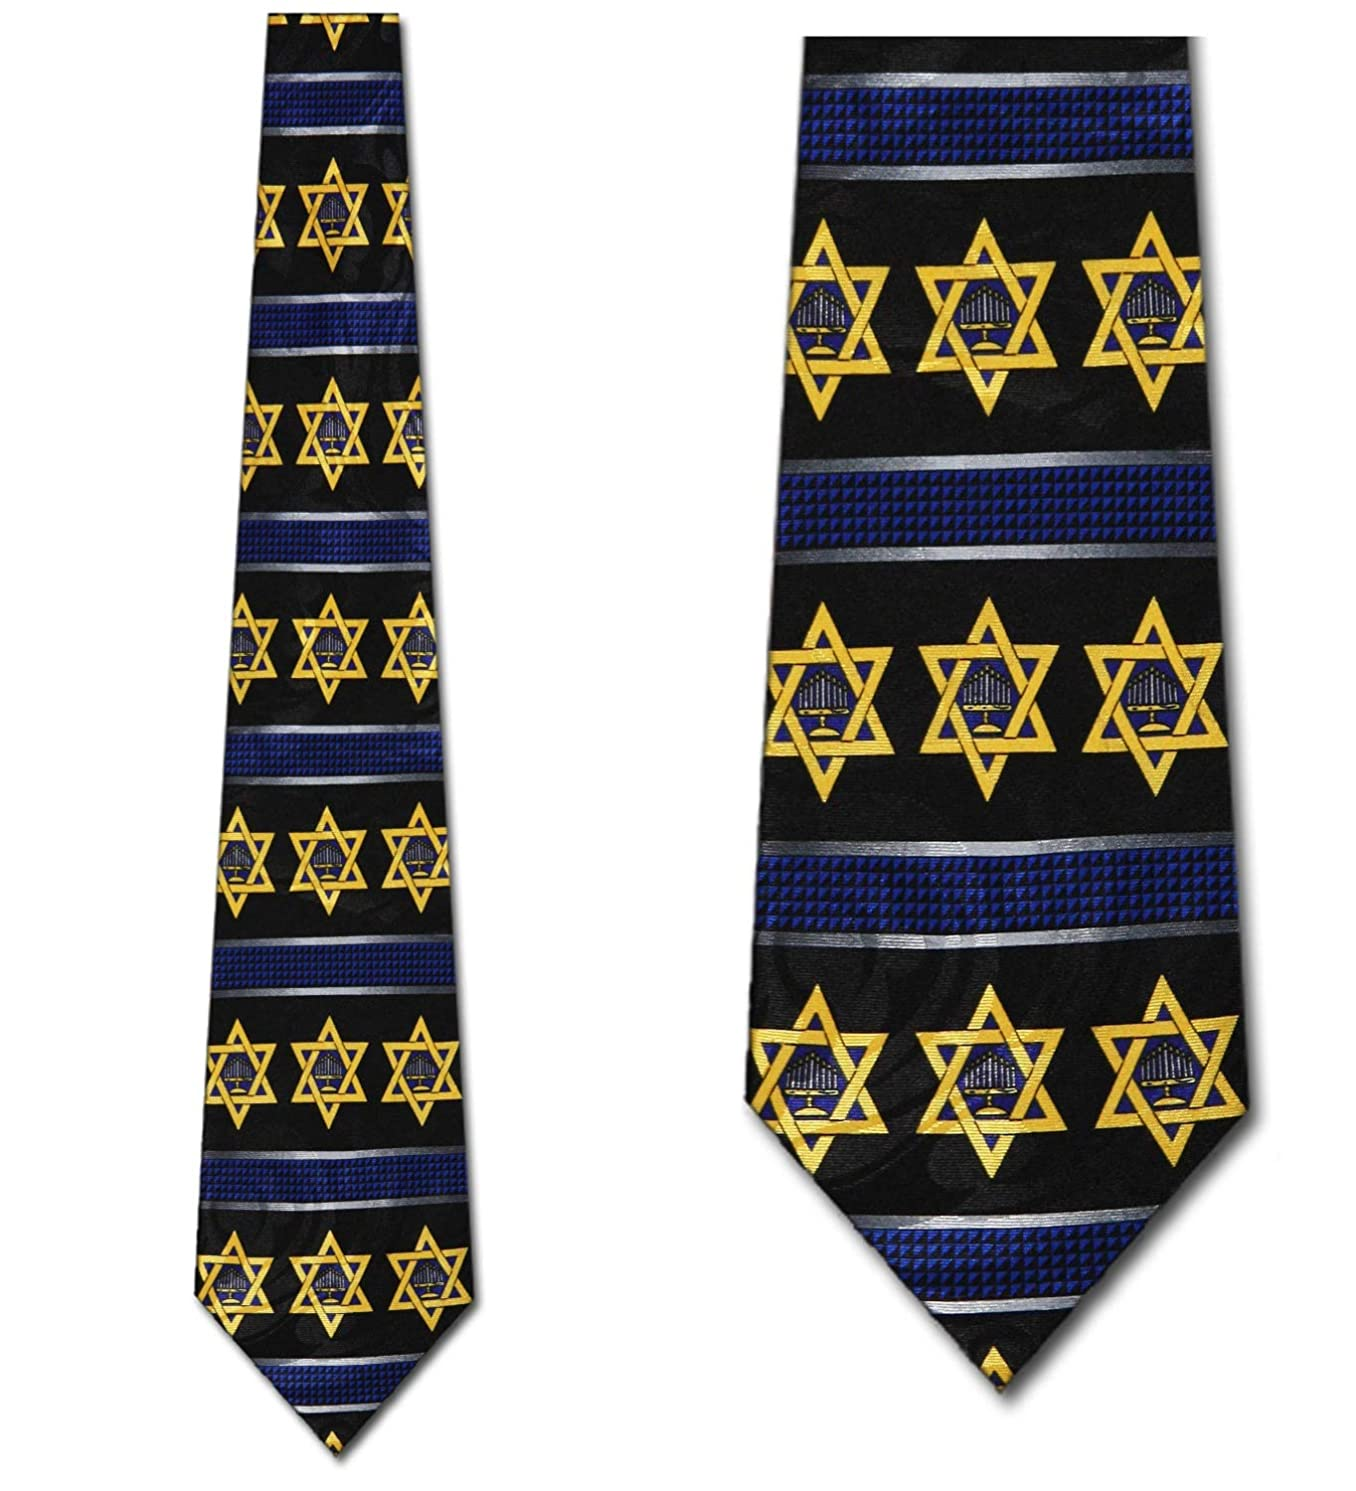 Menorah and Star of David Tie - Men's Hanukkah Necktie